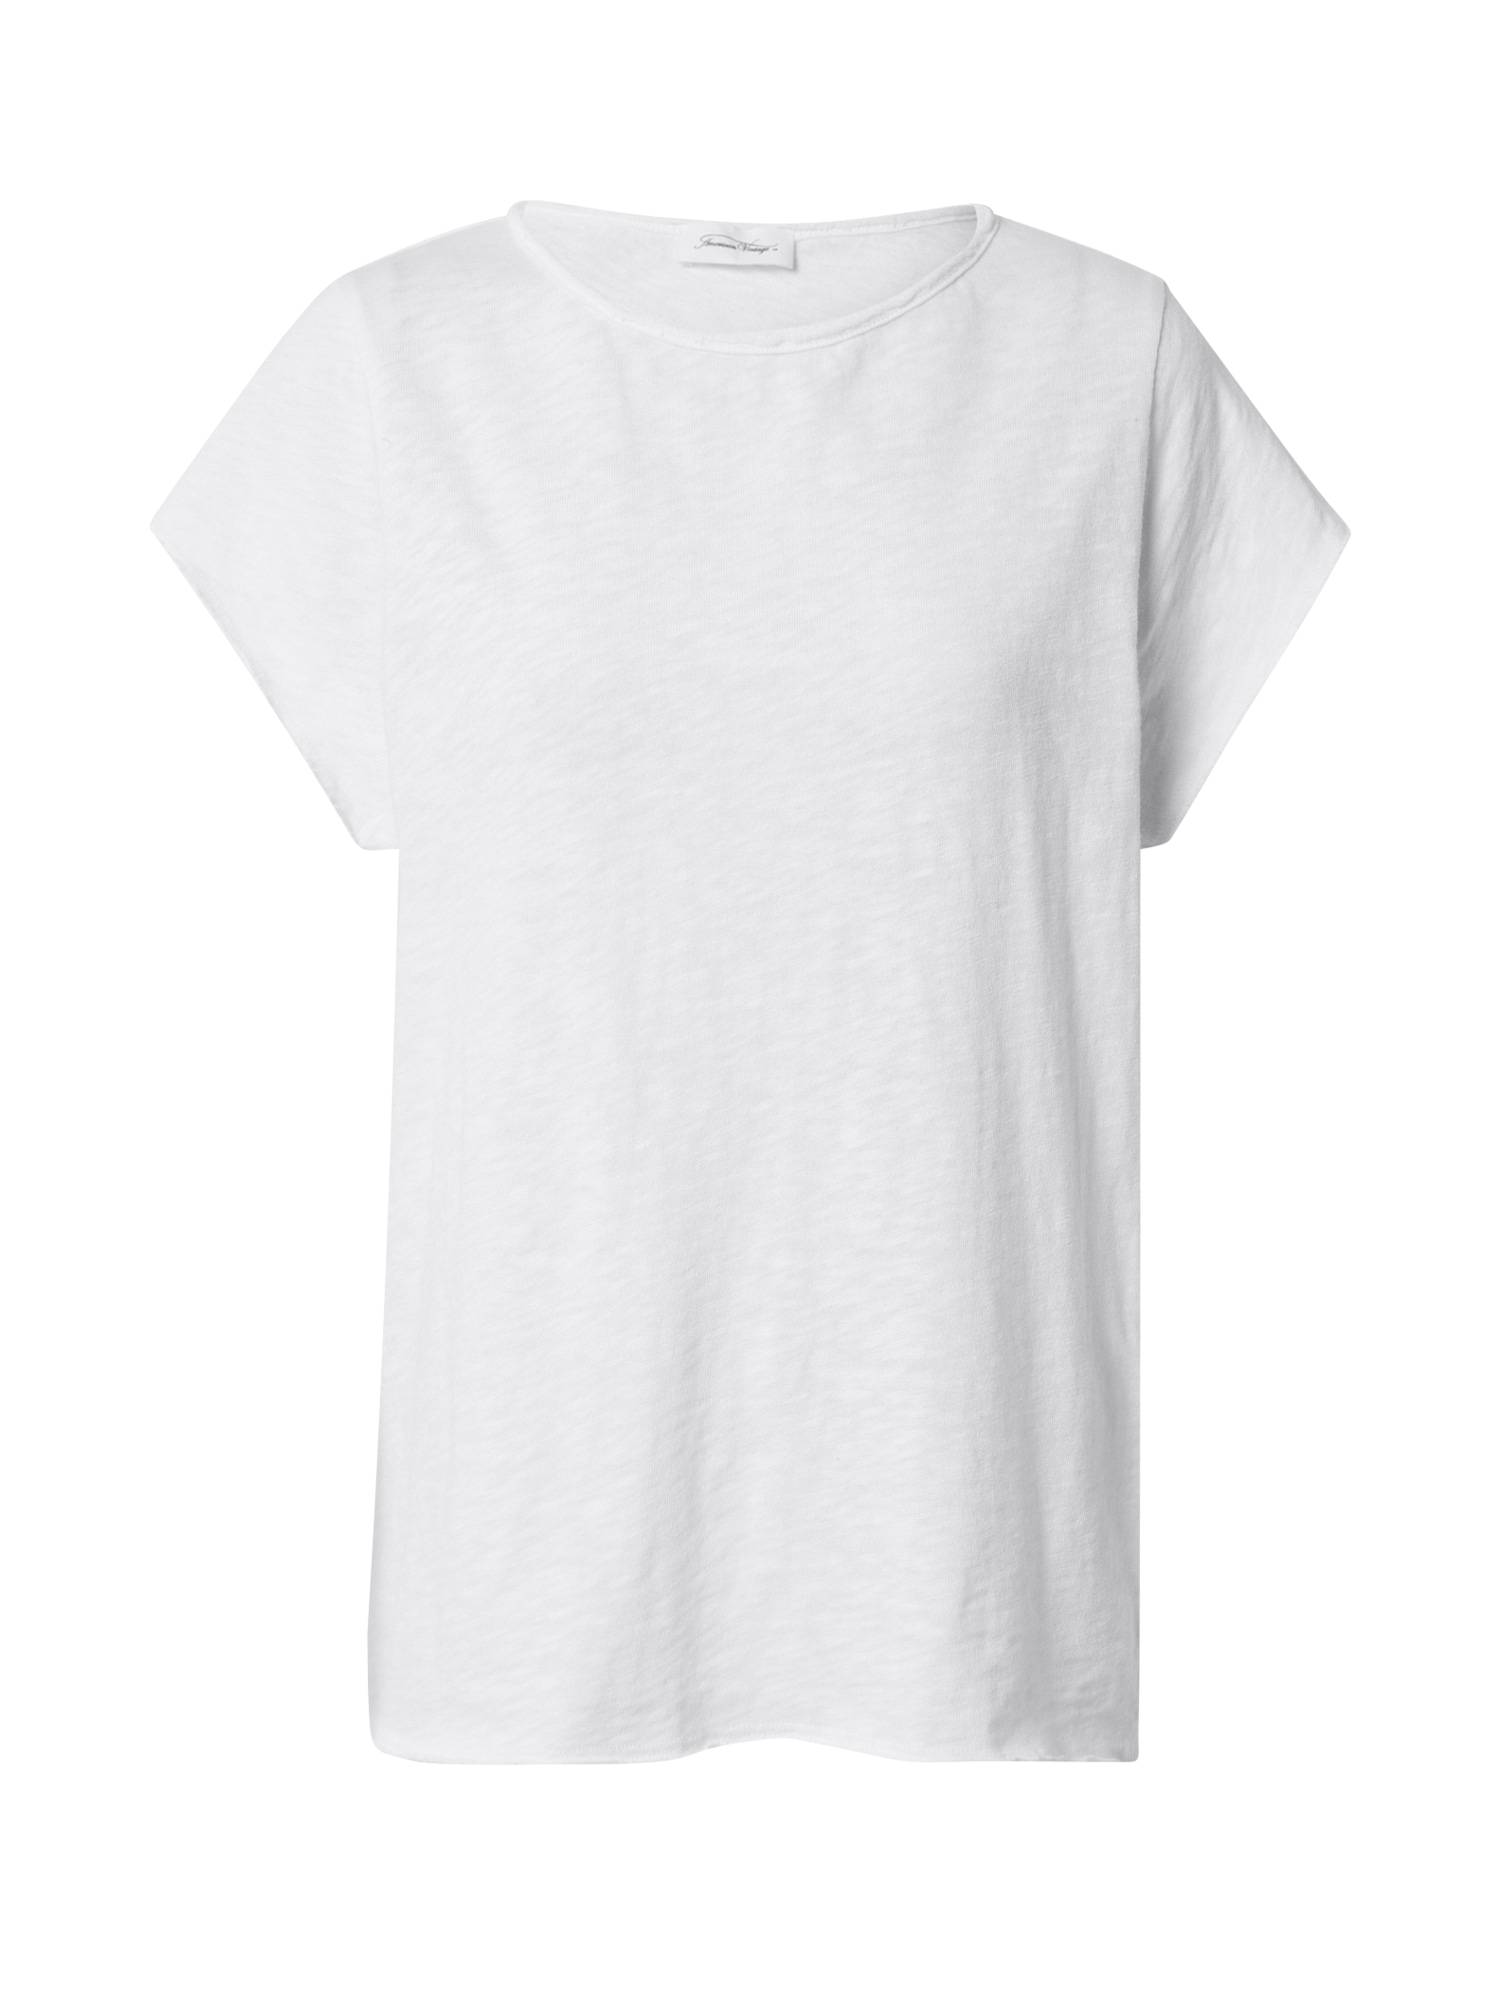 AMERICAN VINTAGE T-shirt 'SON30TG'  - Blanc - Taille: S - female